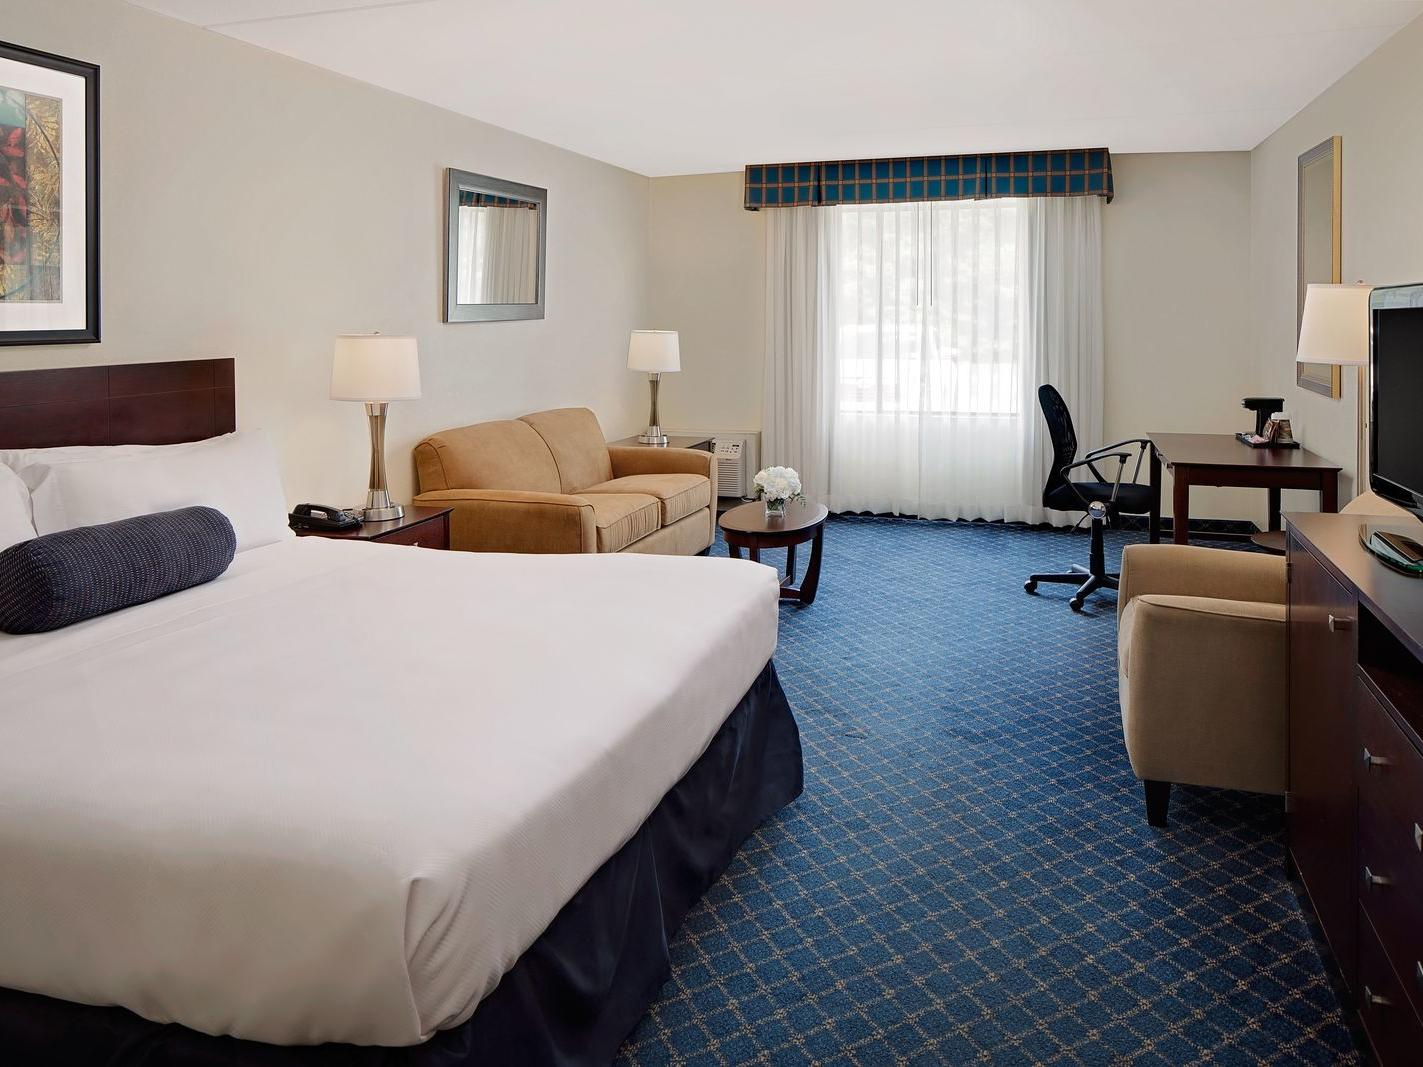 king bed in hotel room with blue carpet and window